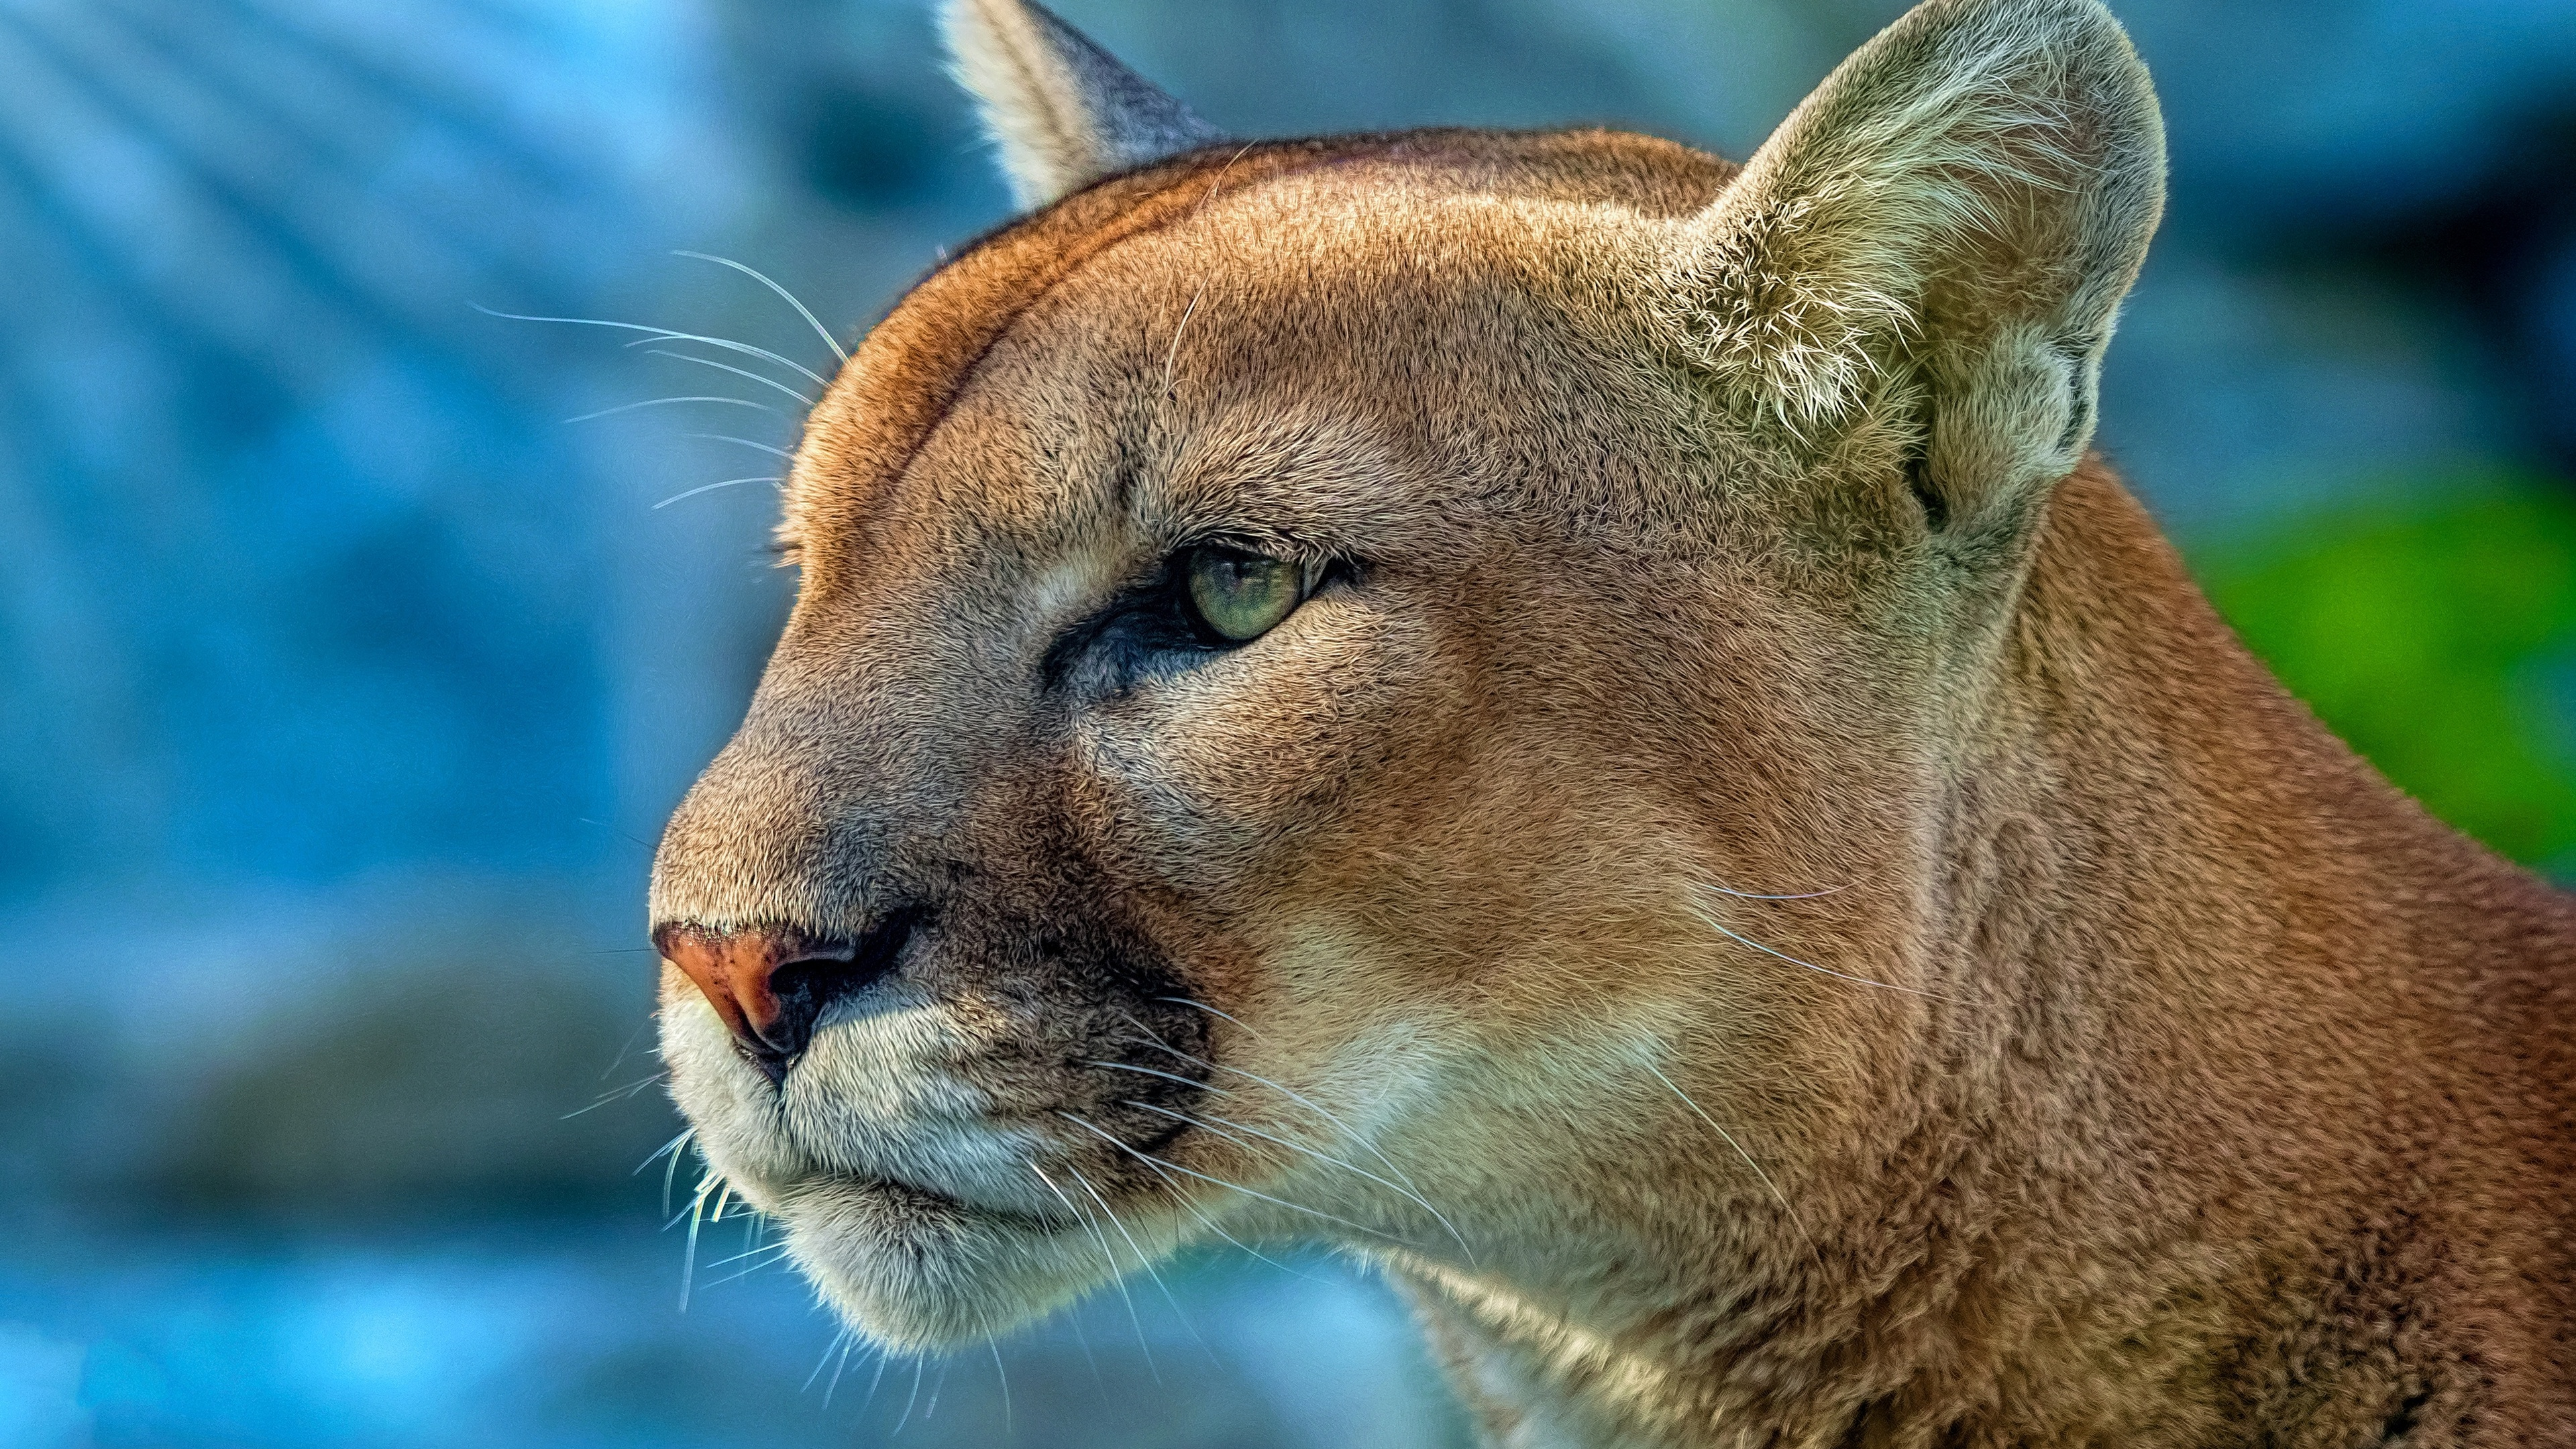 cougar 4k 1542238323 - Cougar 4k - wild wallpapers, predator wallpapers, hd-wallpapers, cougar wallpapers, animals wallpapers, 5k wallpapers, 4k-wallpapers